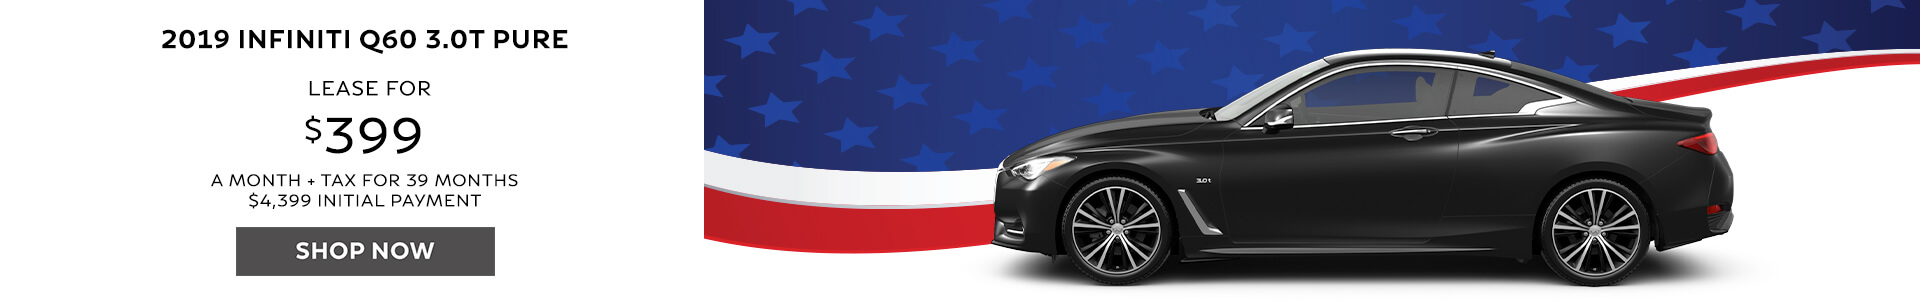 Q60 - Lease for $399